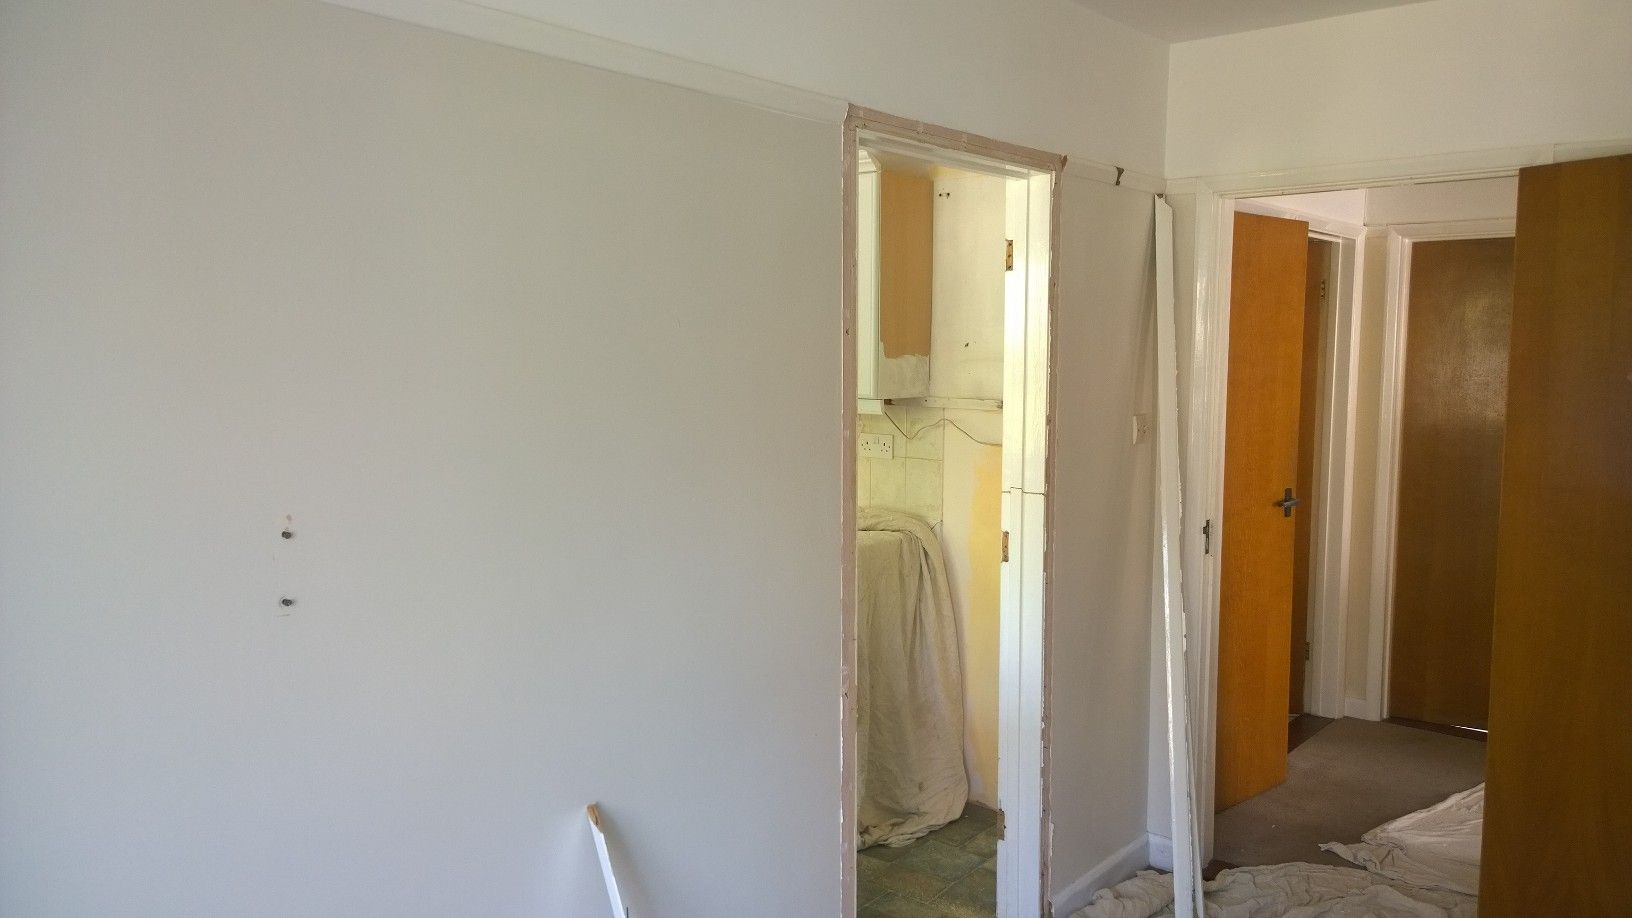 1960's Bungalow. Kitchen and Dining Room. Refurbished to Kitchen Diner. This is the before photo.